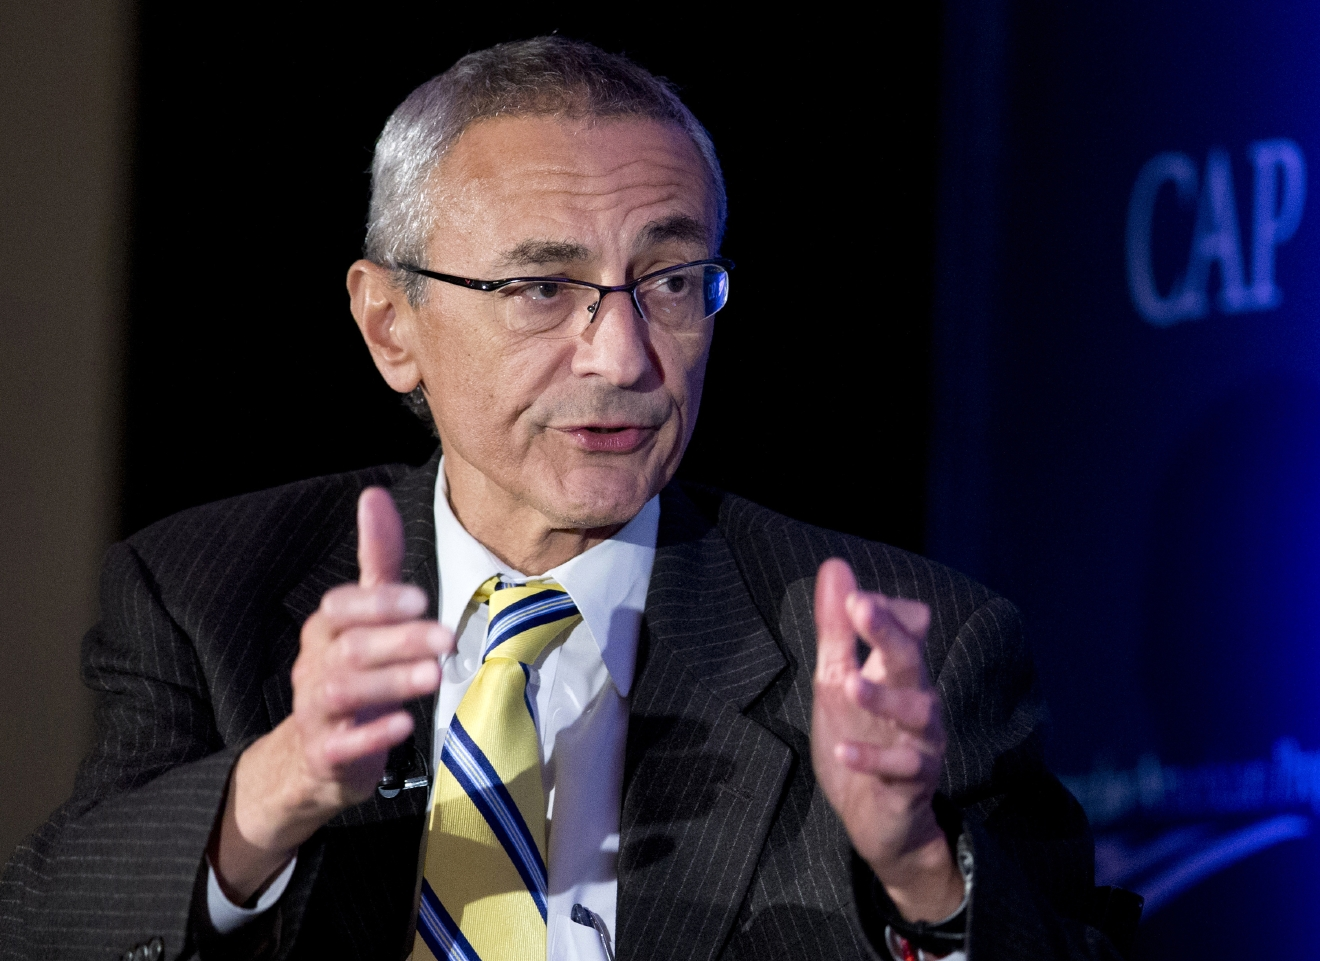 FILE - In this Nov. 19, 2014 file photo, Clinton campaign chairman John Podesta speaks in Washington. (AP Photo/Manuel Balce Ceneta, File)